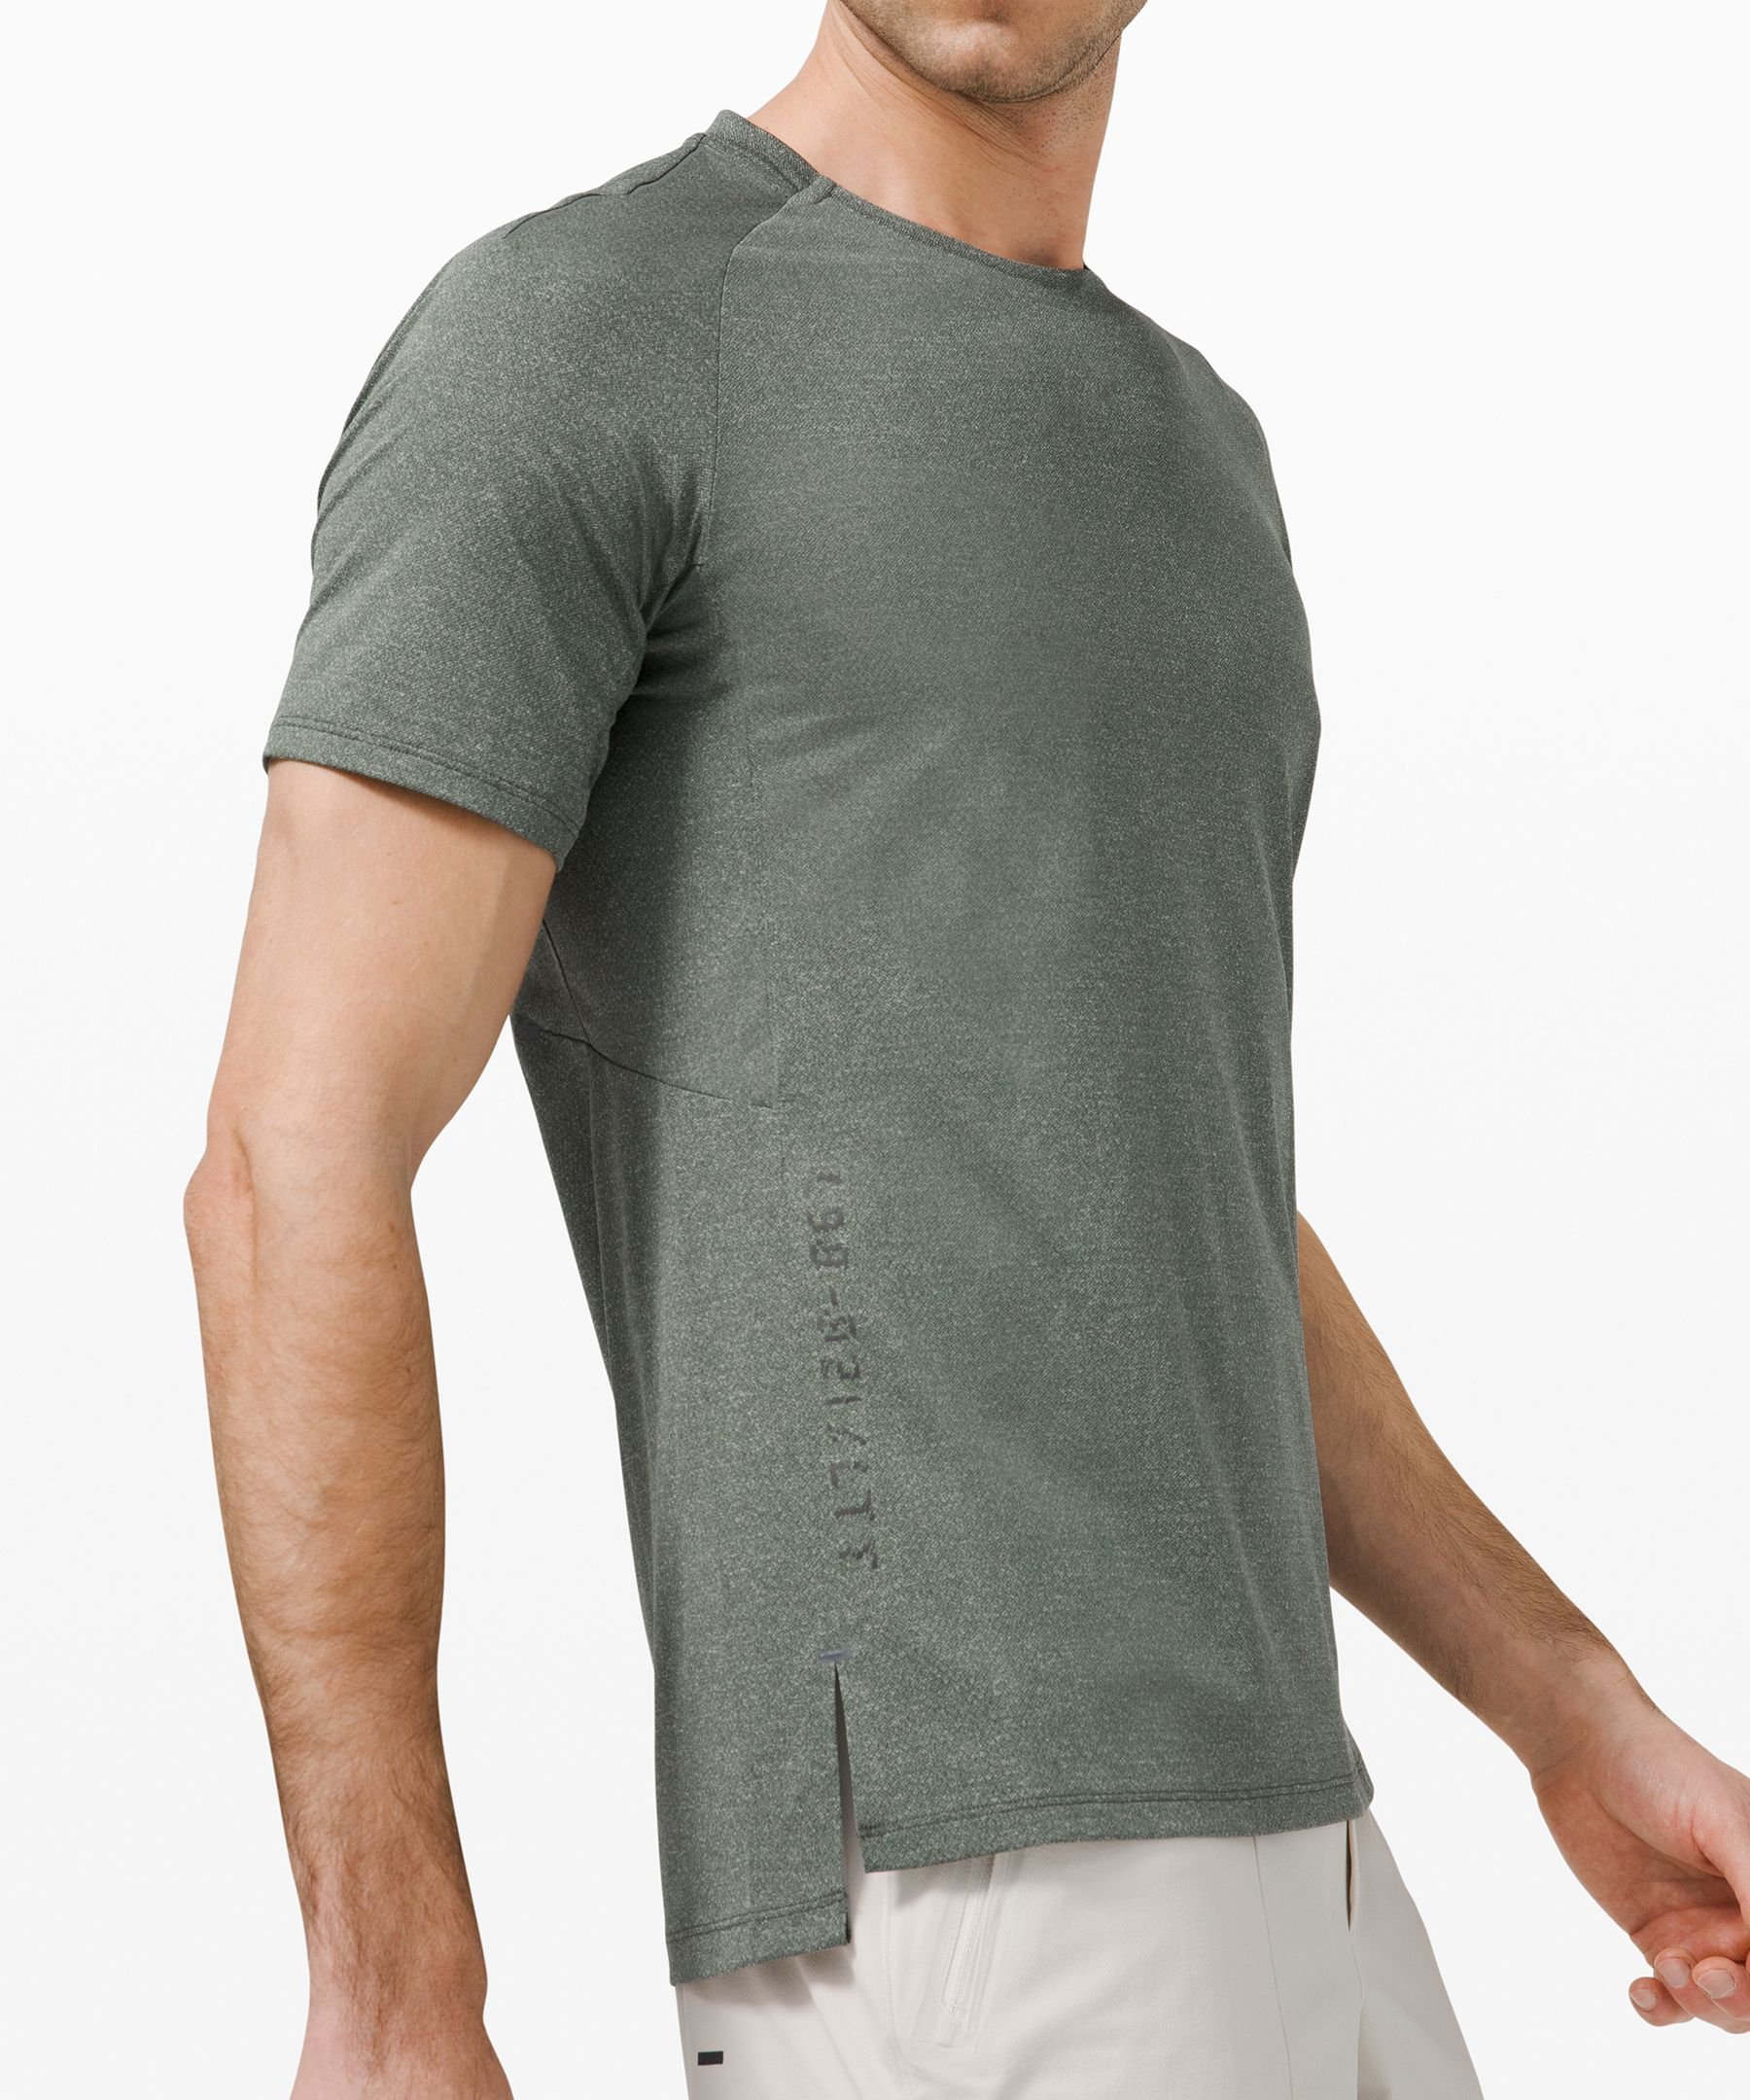 Textured Training Short Sleeve